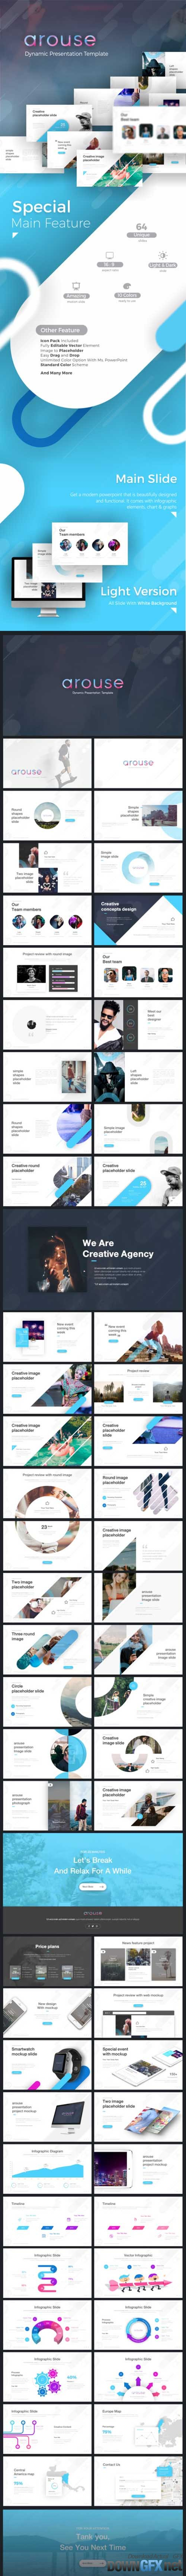 Arouse Dynamic Presentation Template 19703867